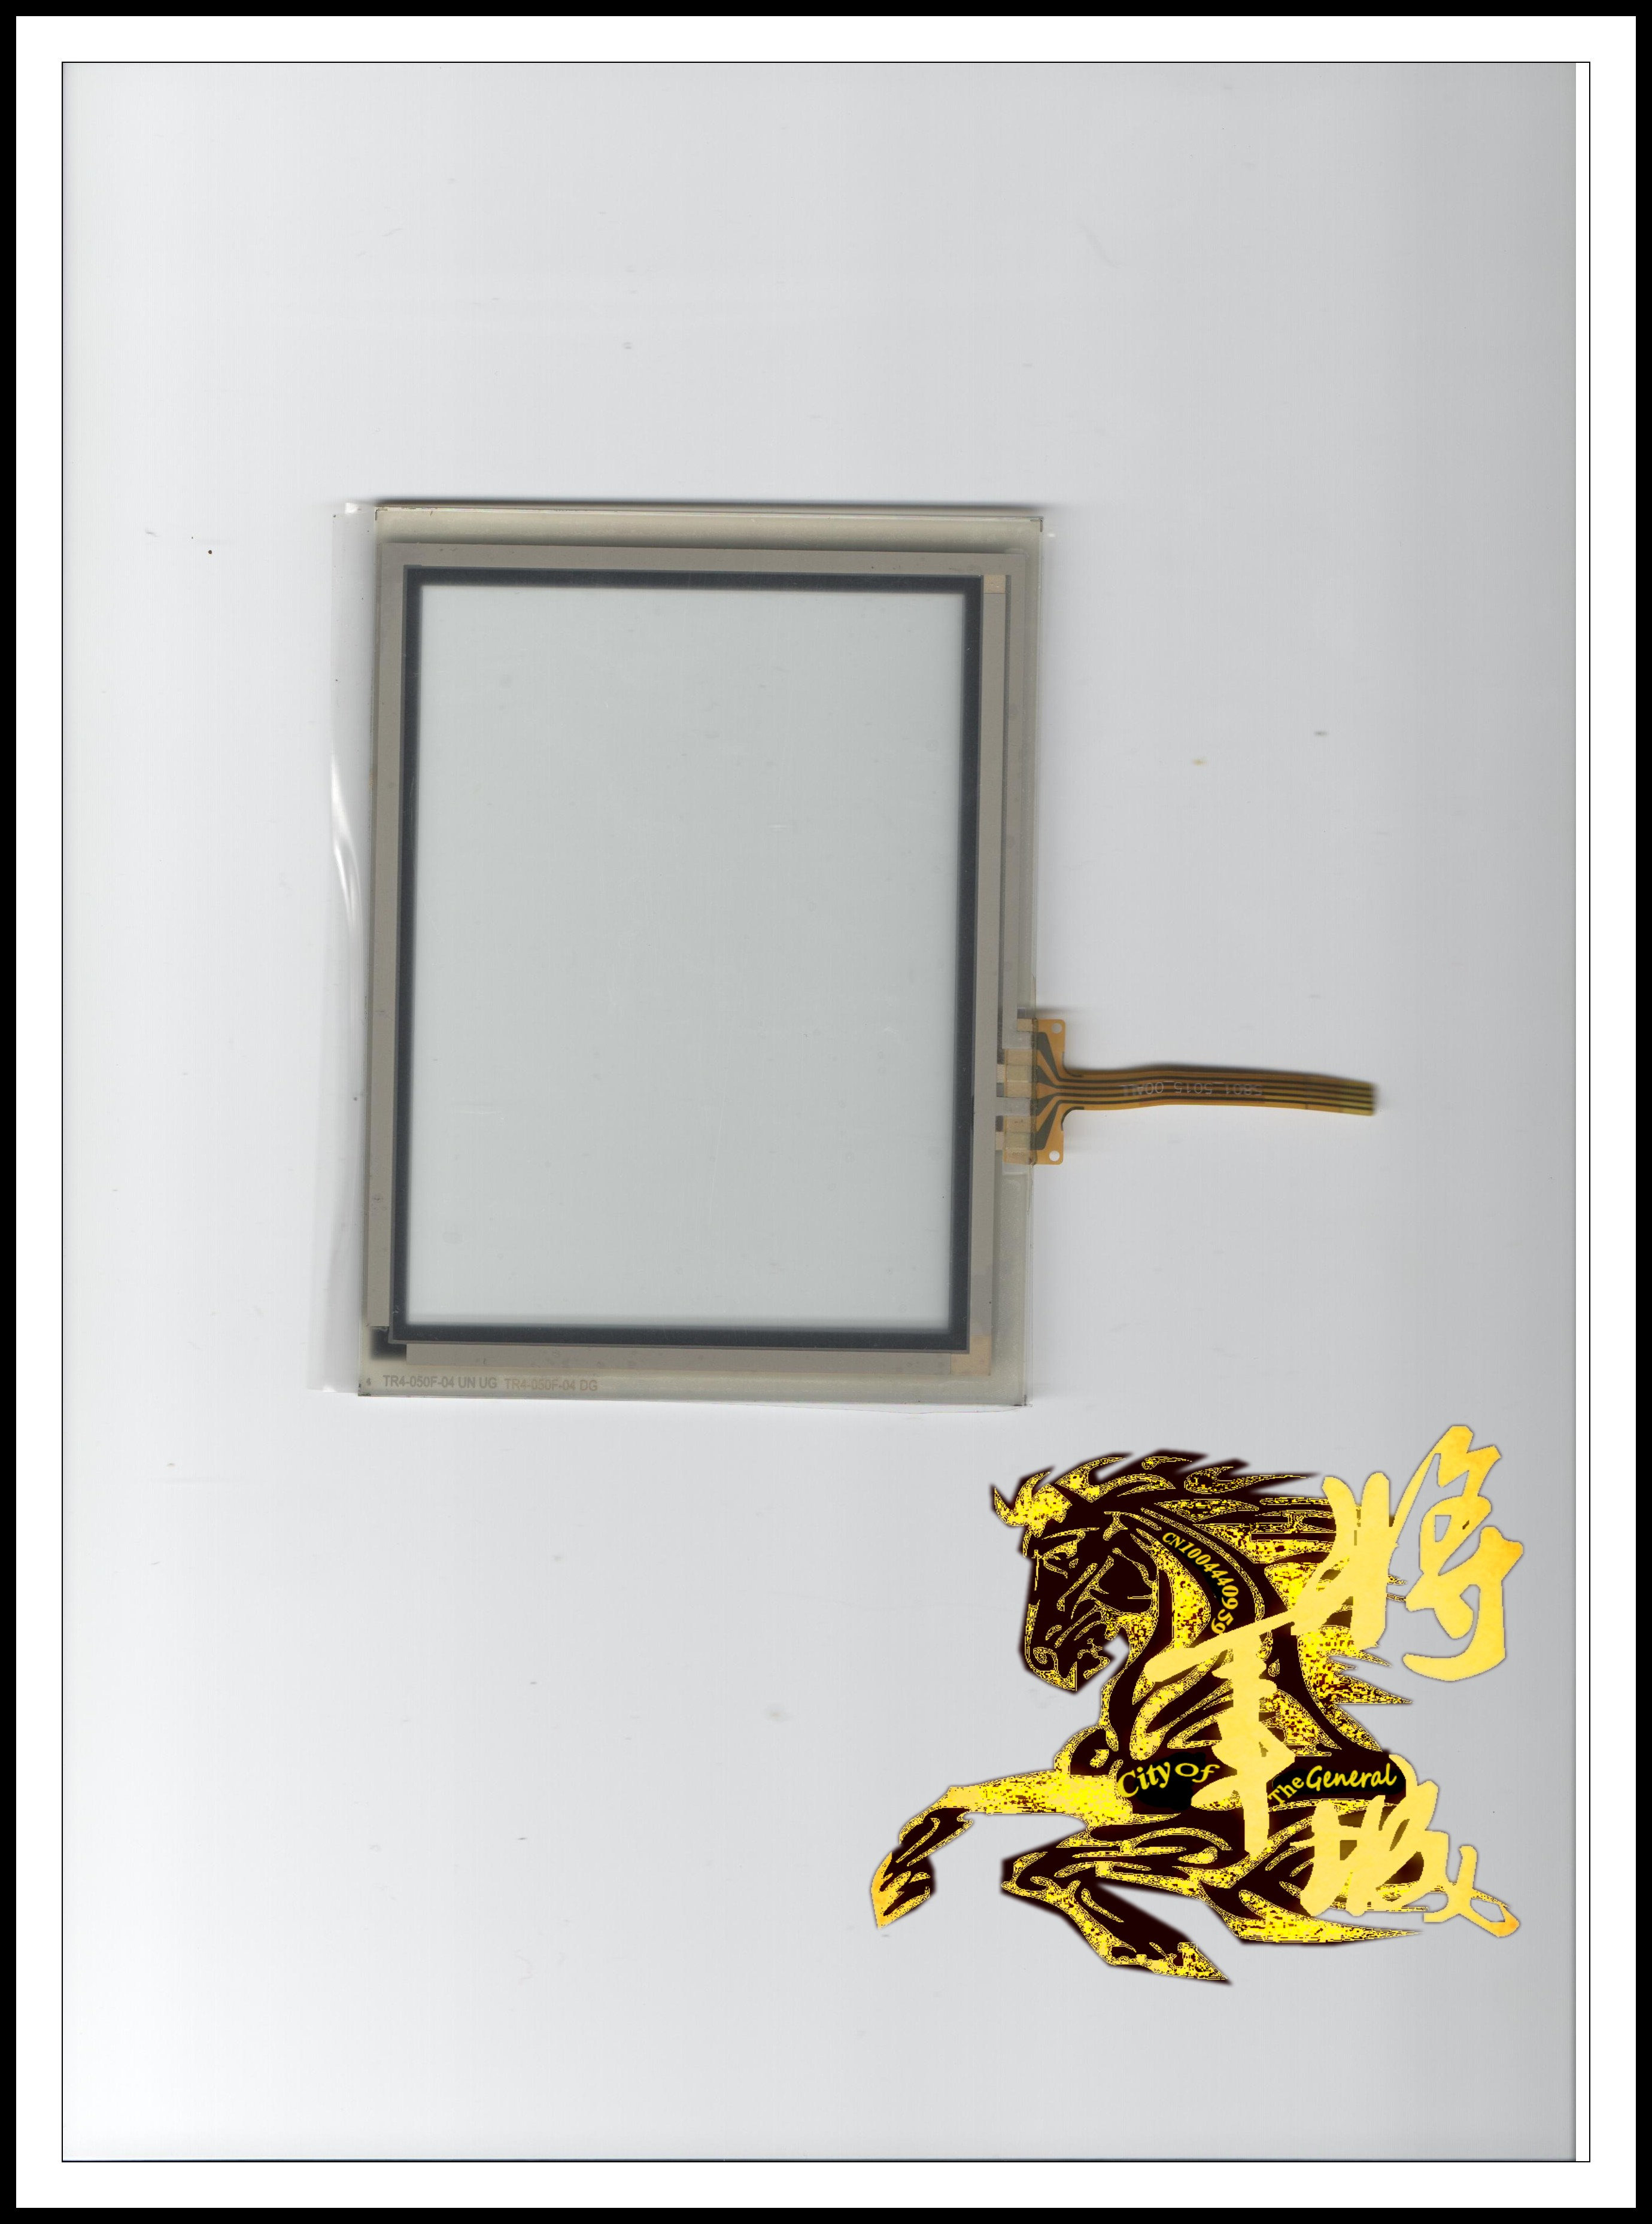 GENCTY For 5-inch four-wire resistive touch screen 127 * 95mm W-Y